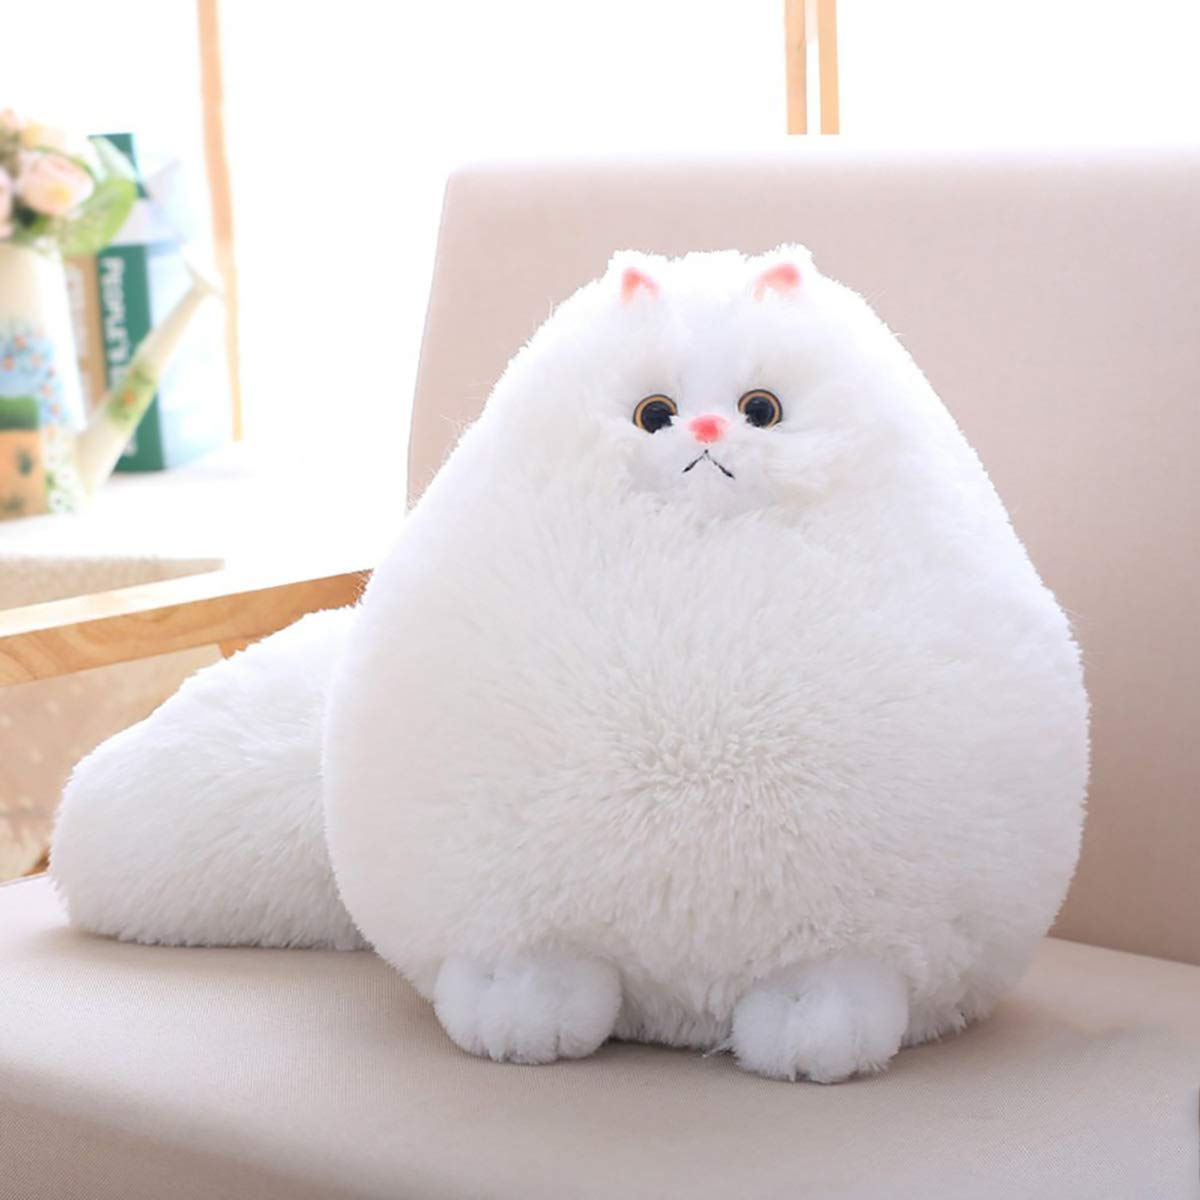 Winsterch Kids Stuffed Cats Plush Animal Toys Gift Baby Doll, White Plush Cat, 12 Inches A003